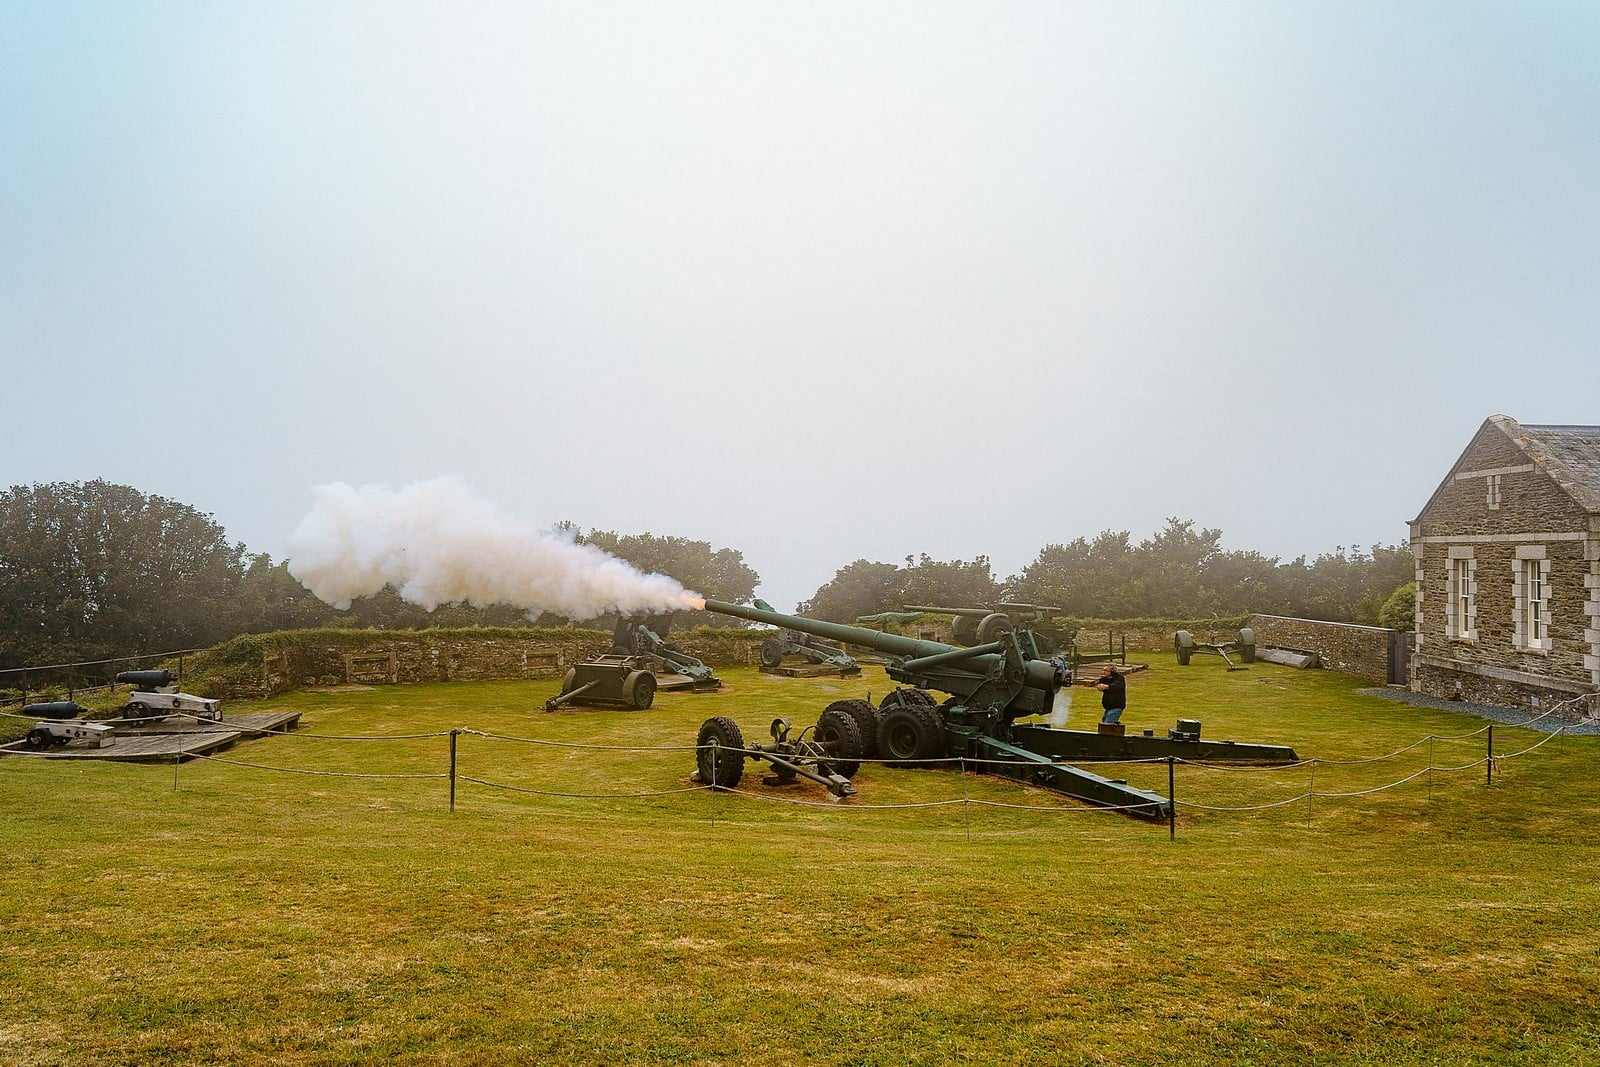 ww2 canon being fired at Pendennis Castle